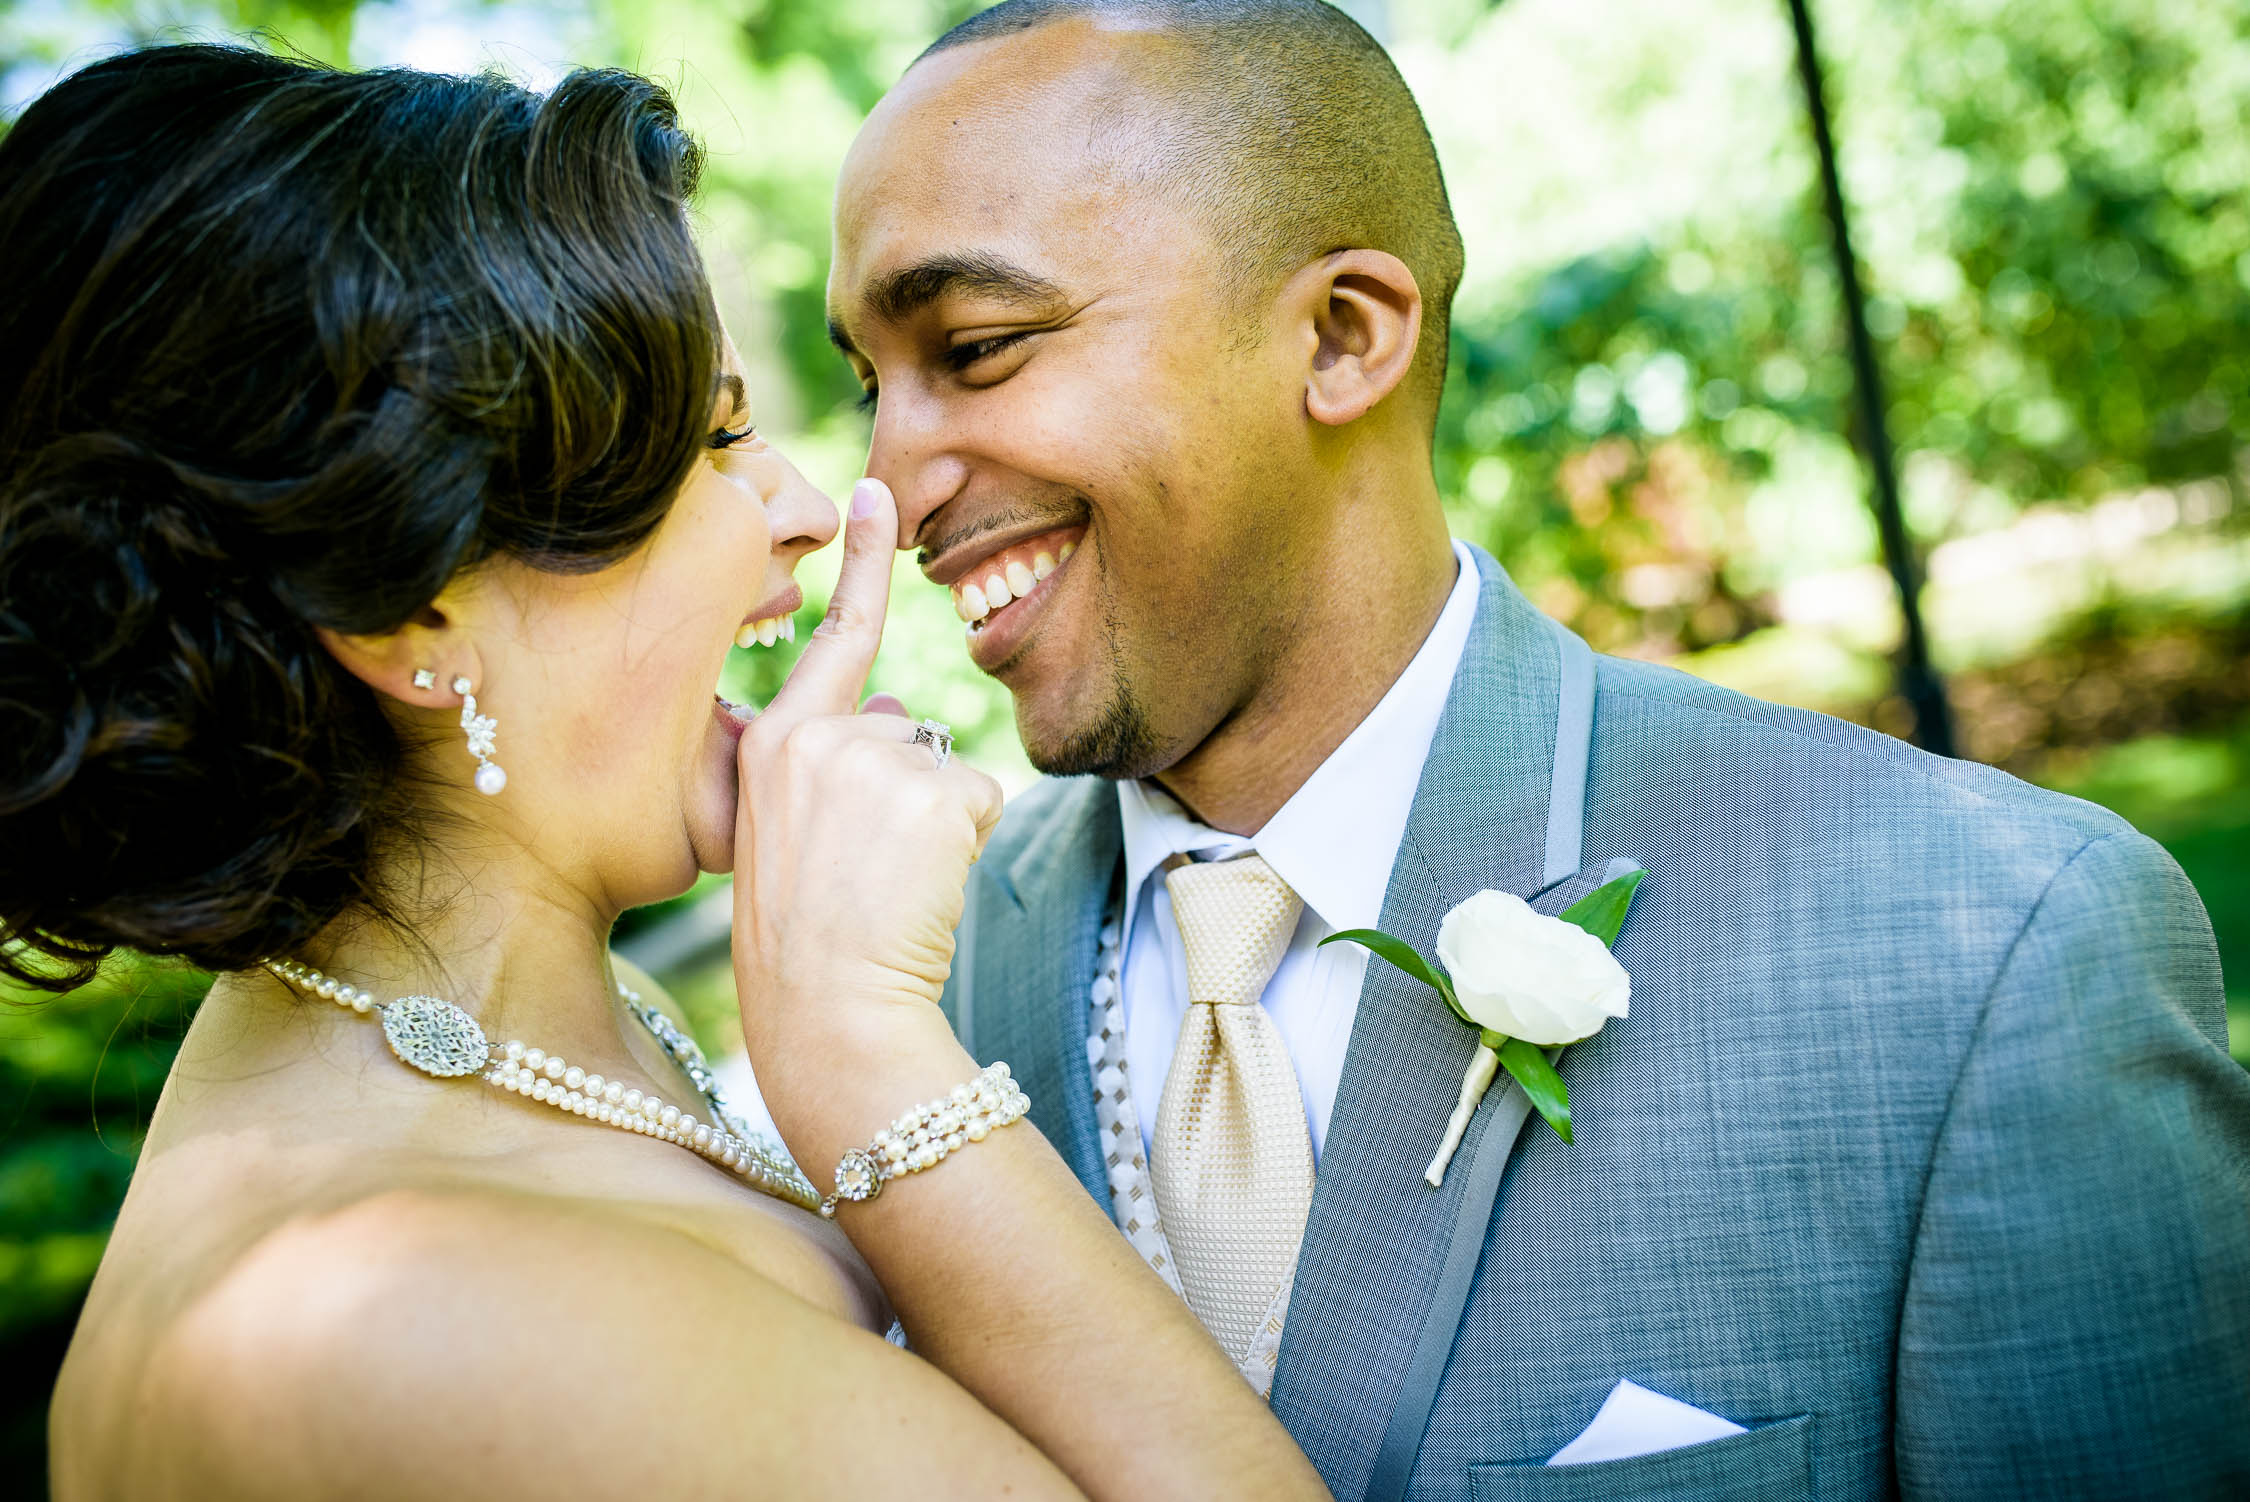 Fun first look moment between the bride and groom during their University of Chicago wedding.